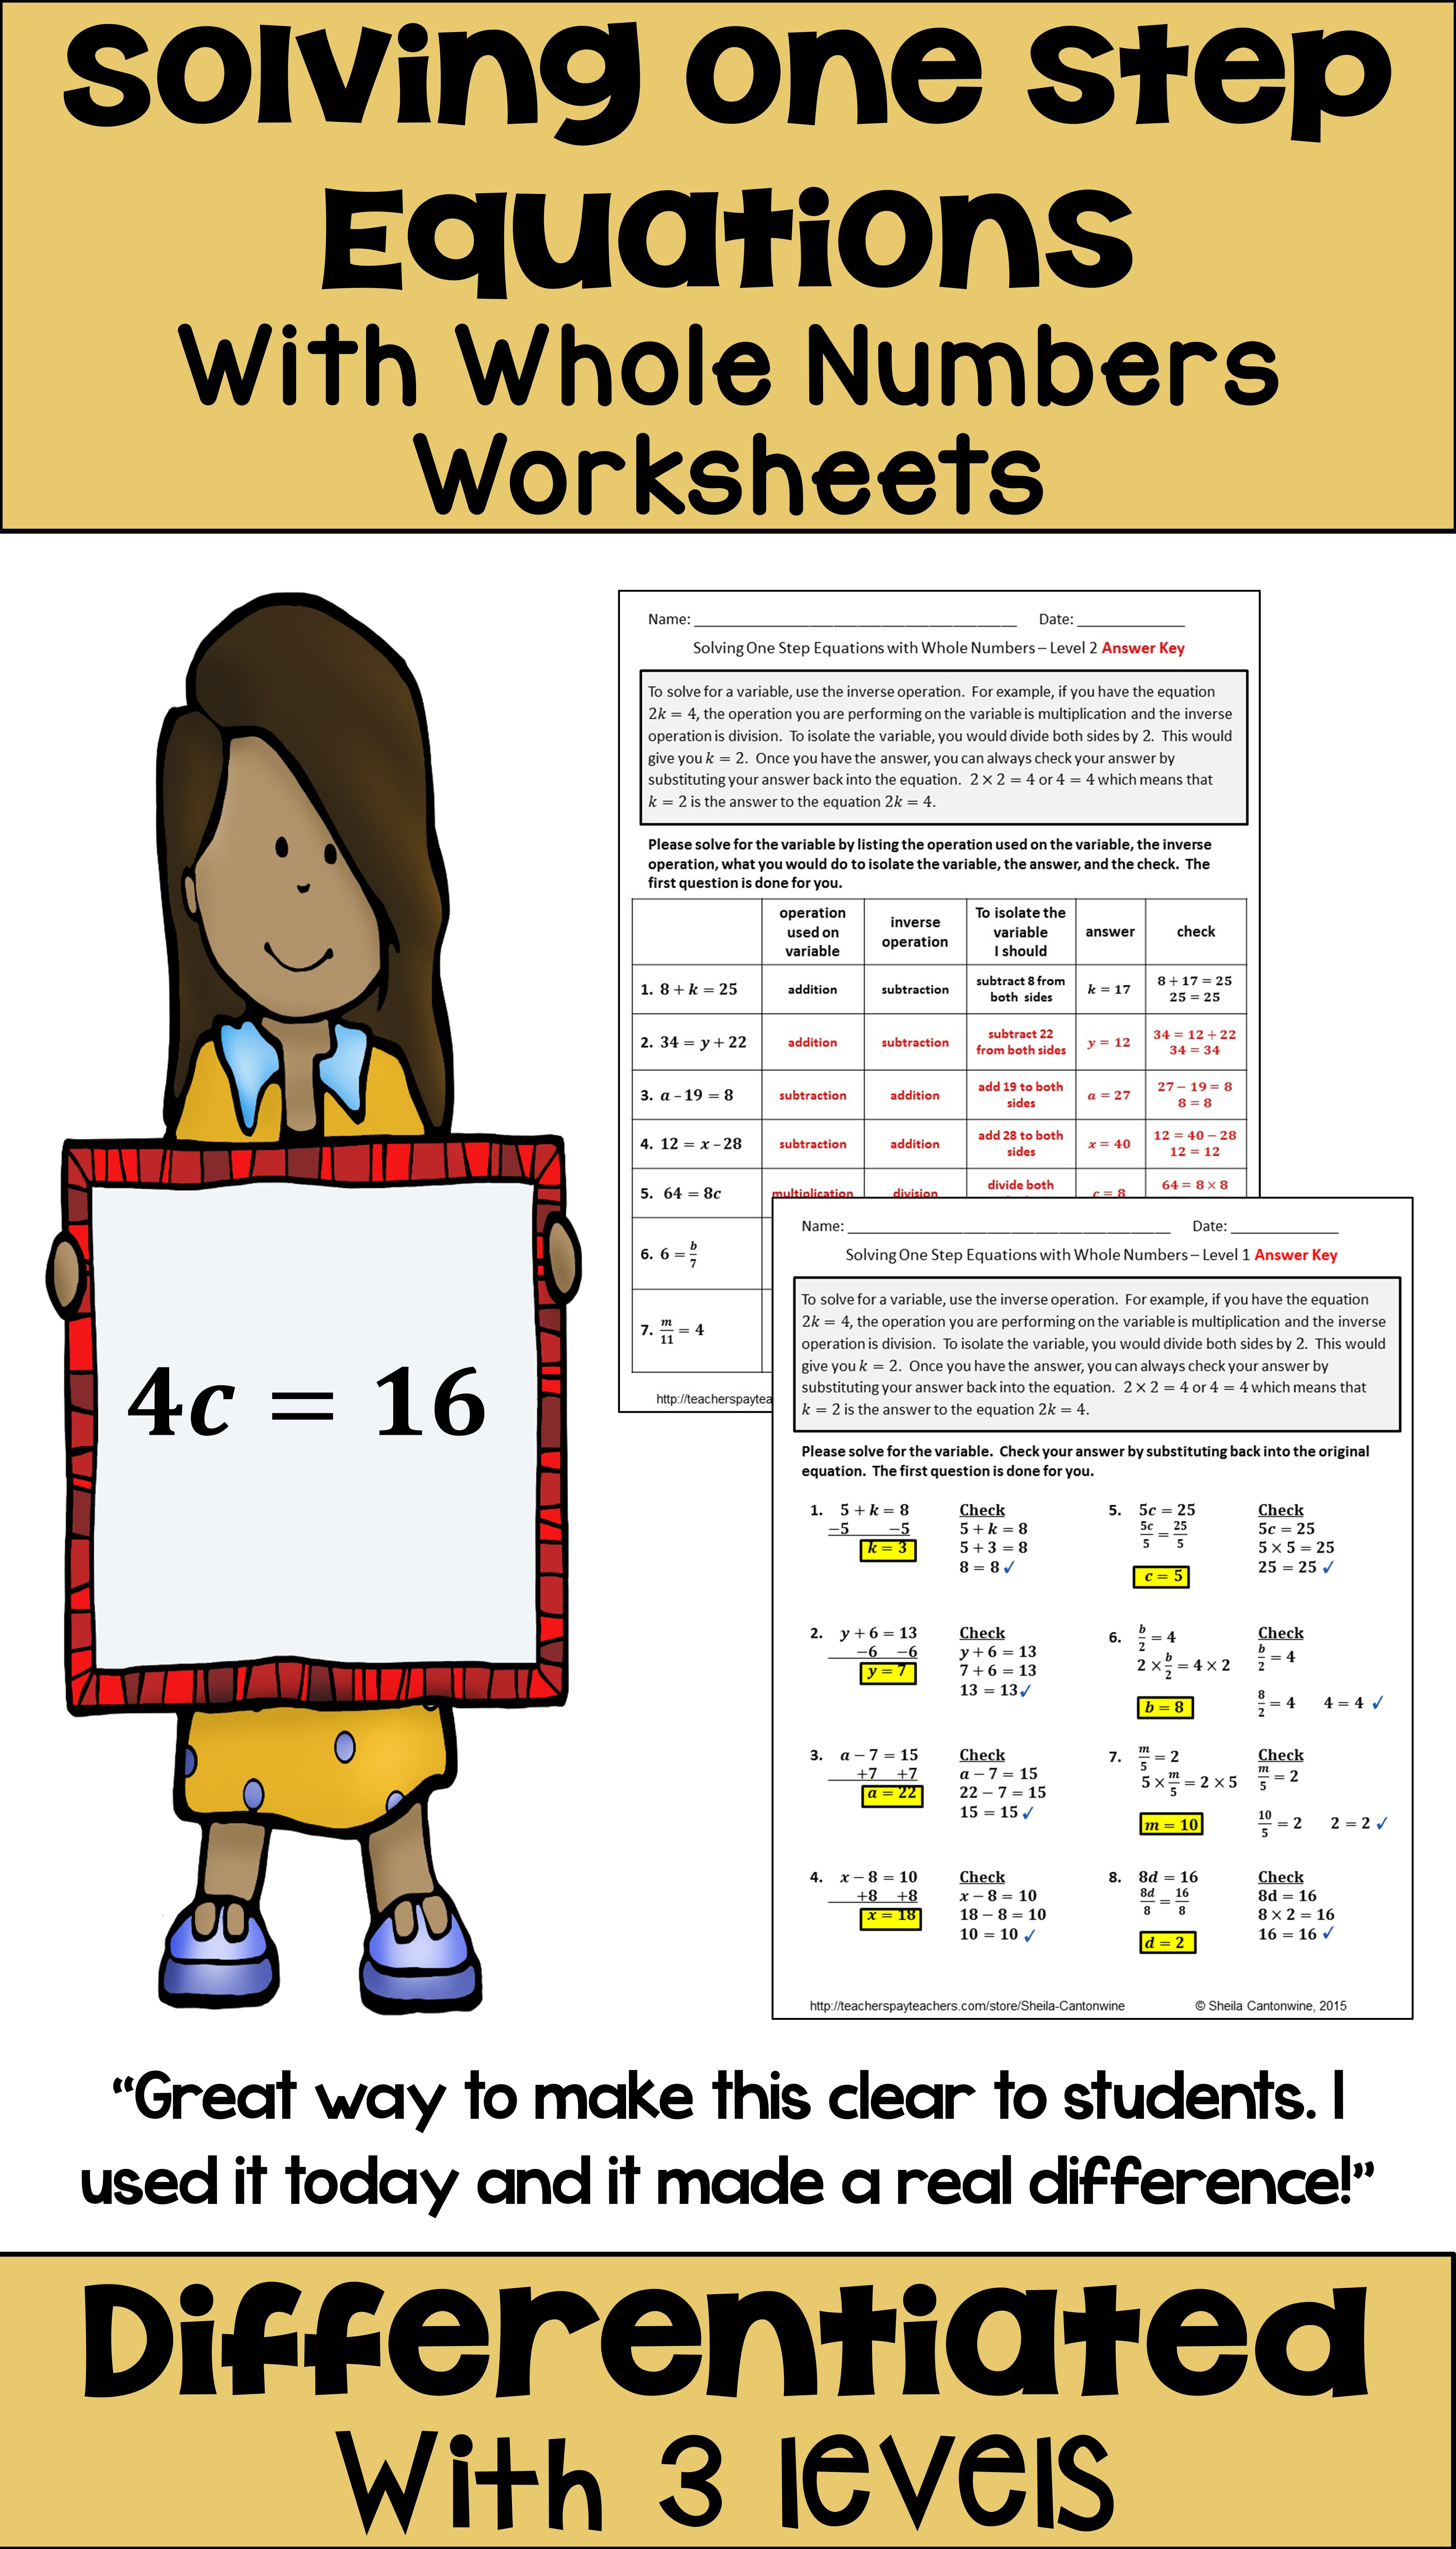 One Step Equations With Whole Numbers Differentiated